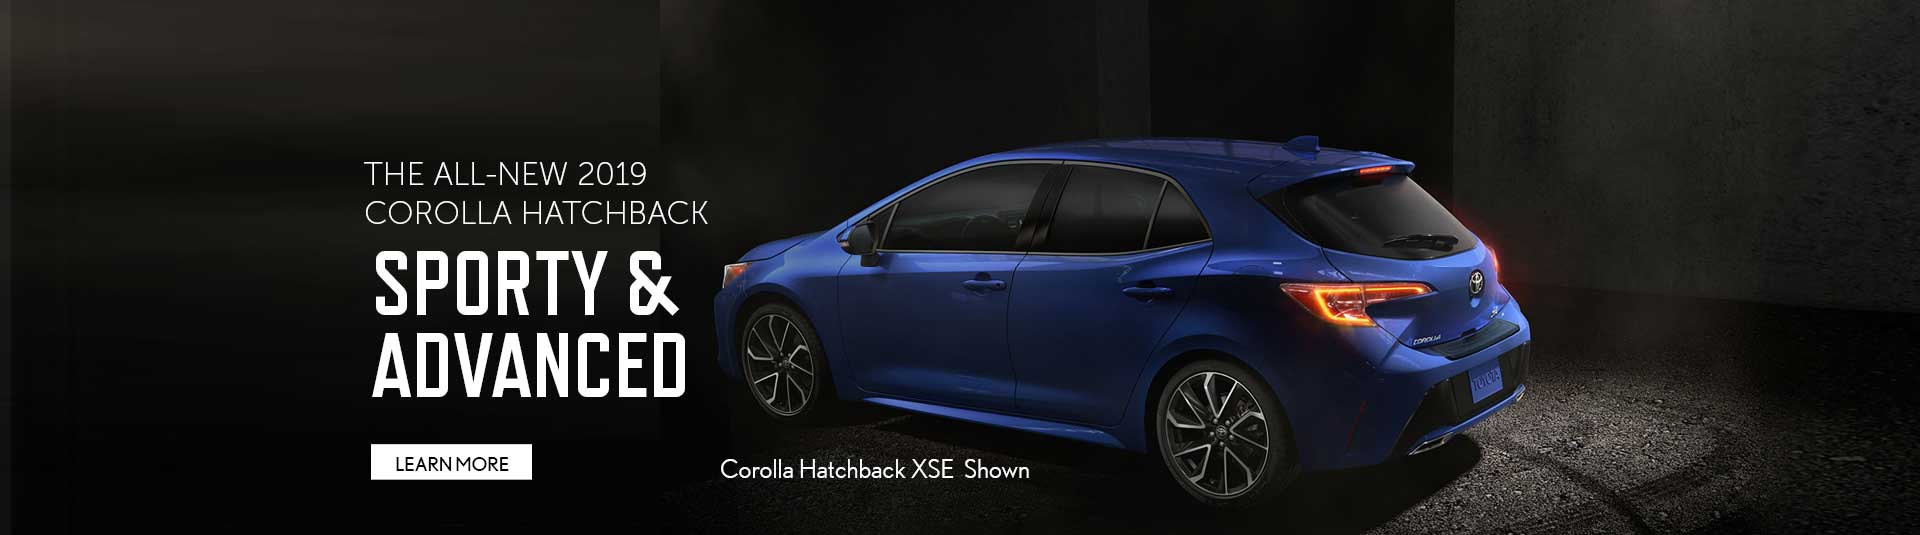 DowntownToyota-Corolla-Hatch-HERO